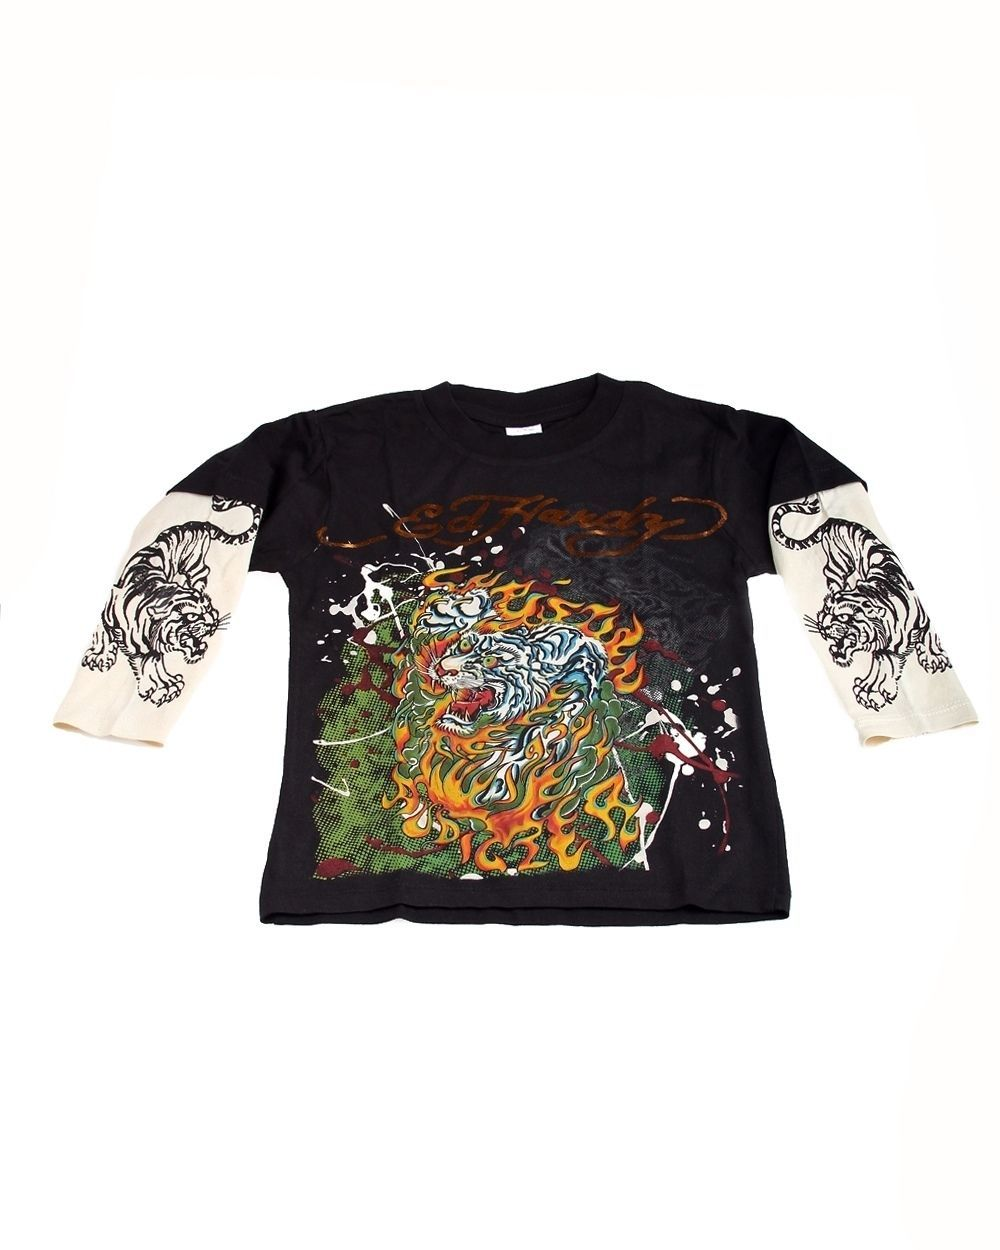 Popular Ed Hardy Boys Black Tee Shirt with White Tiger Motif, Double Long Sleeve